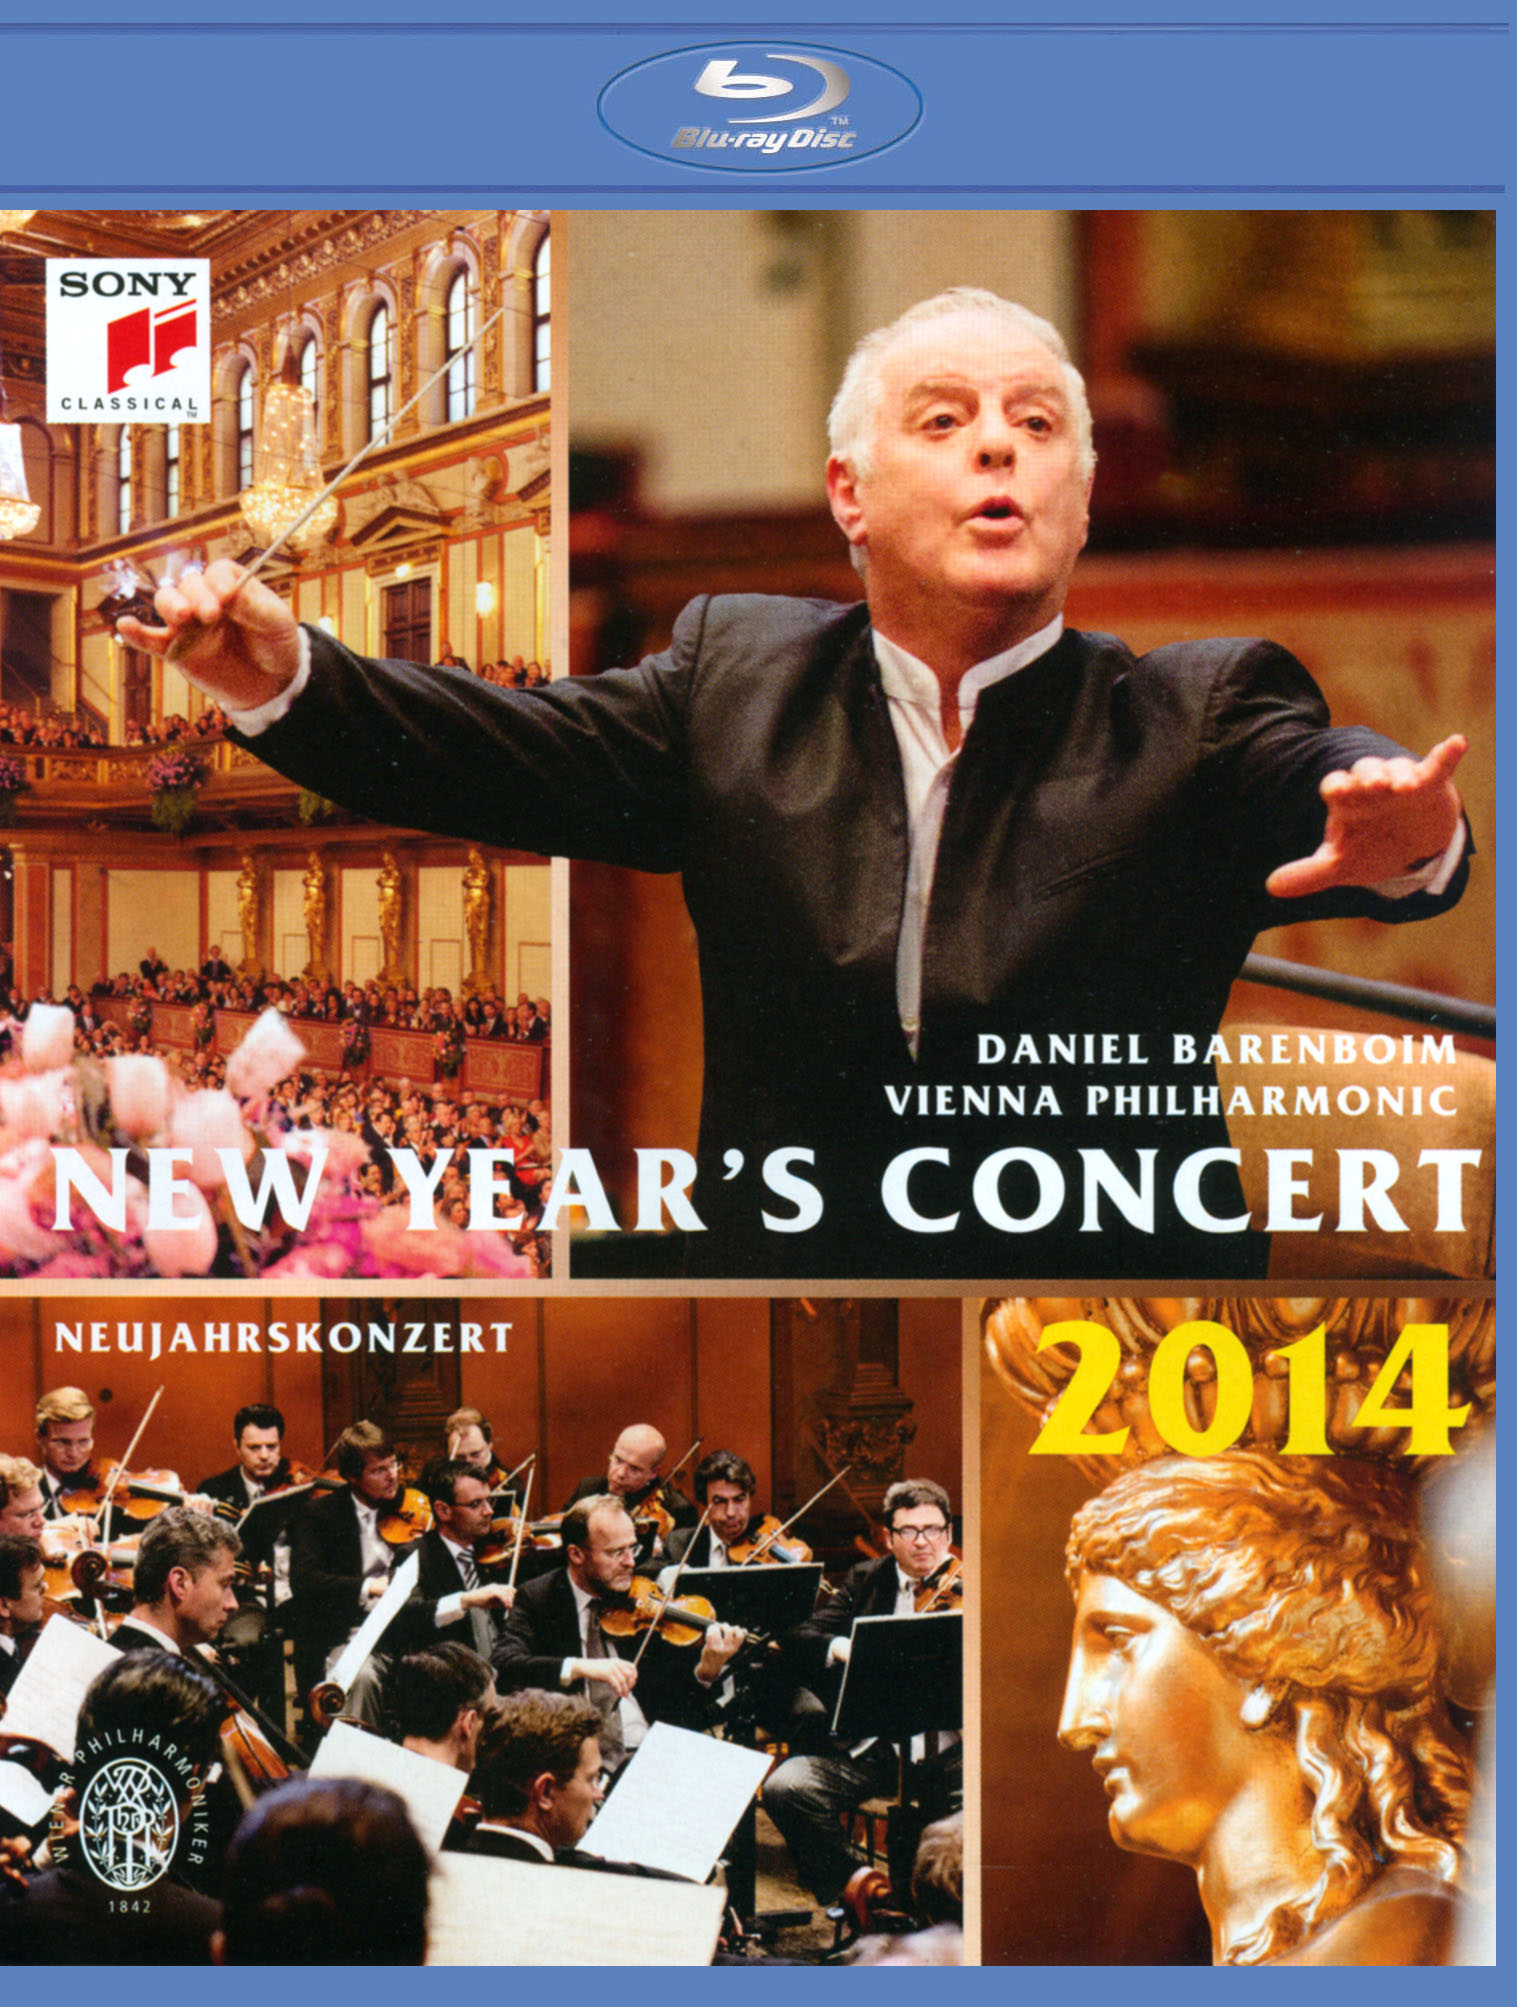 New Year's Concert 2014